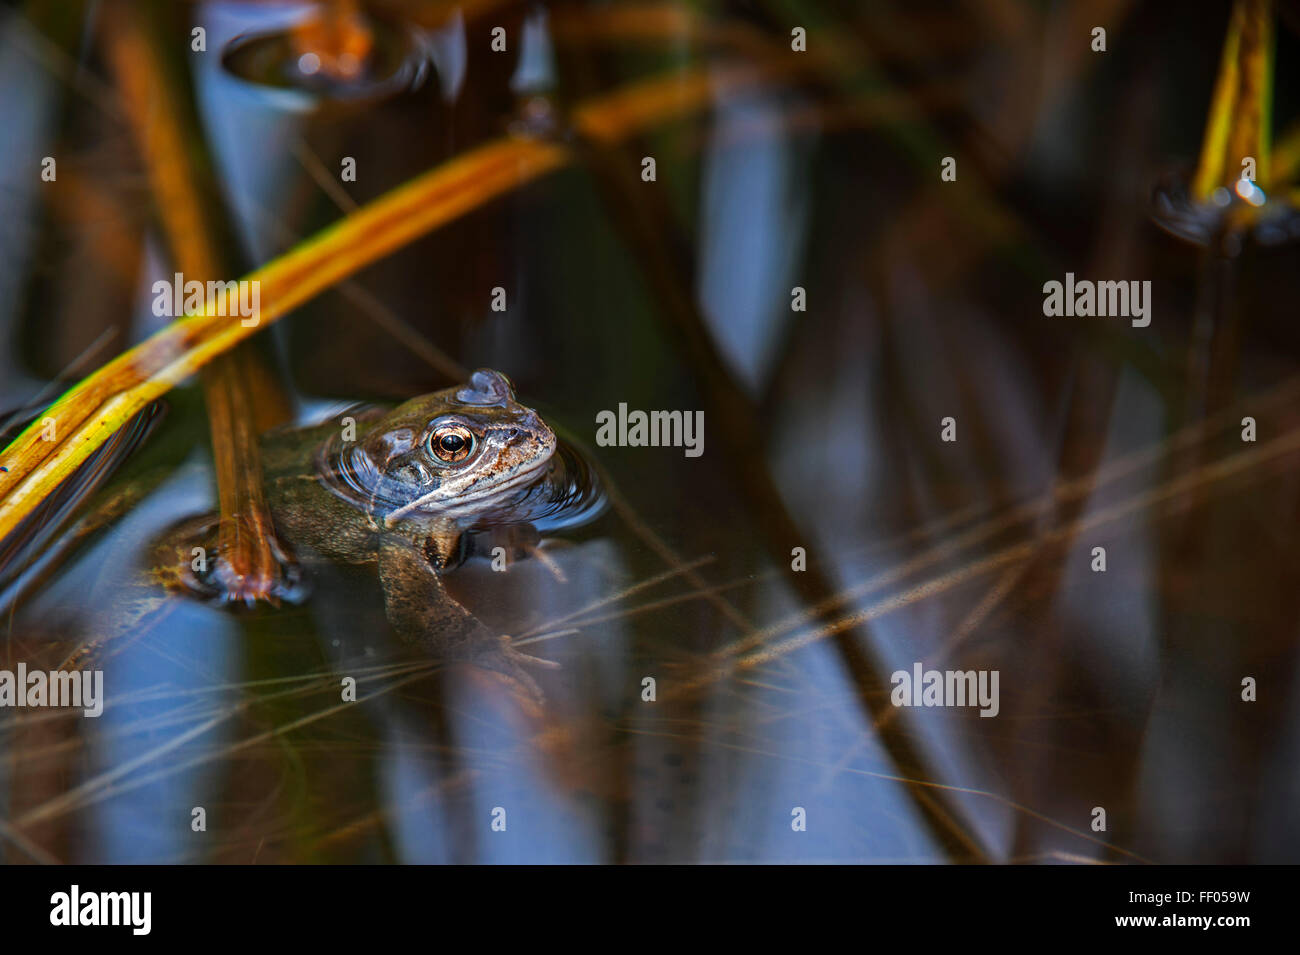 European common brown frog (Rana temporaria) floating in pond among frogspawn - Stock Image